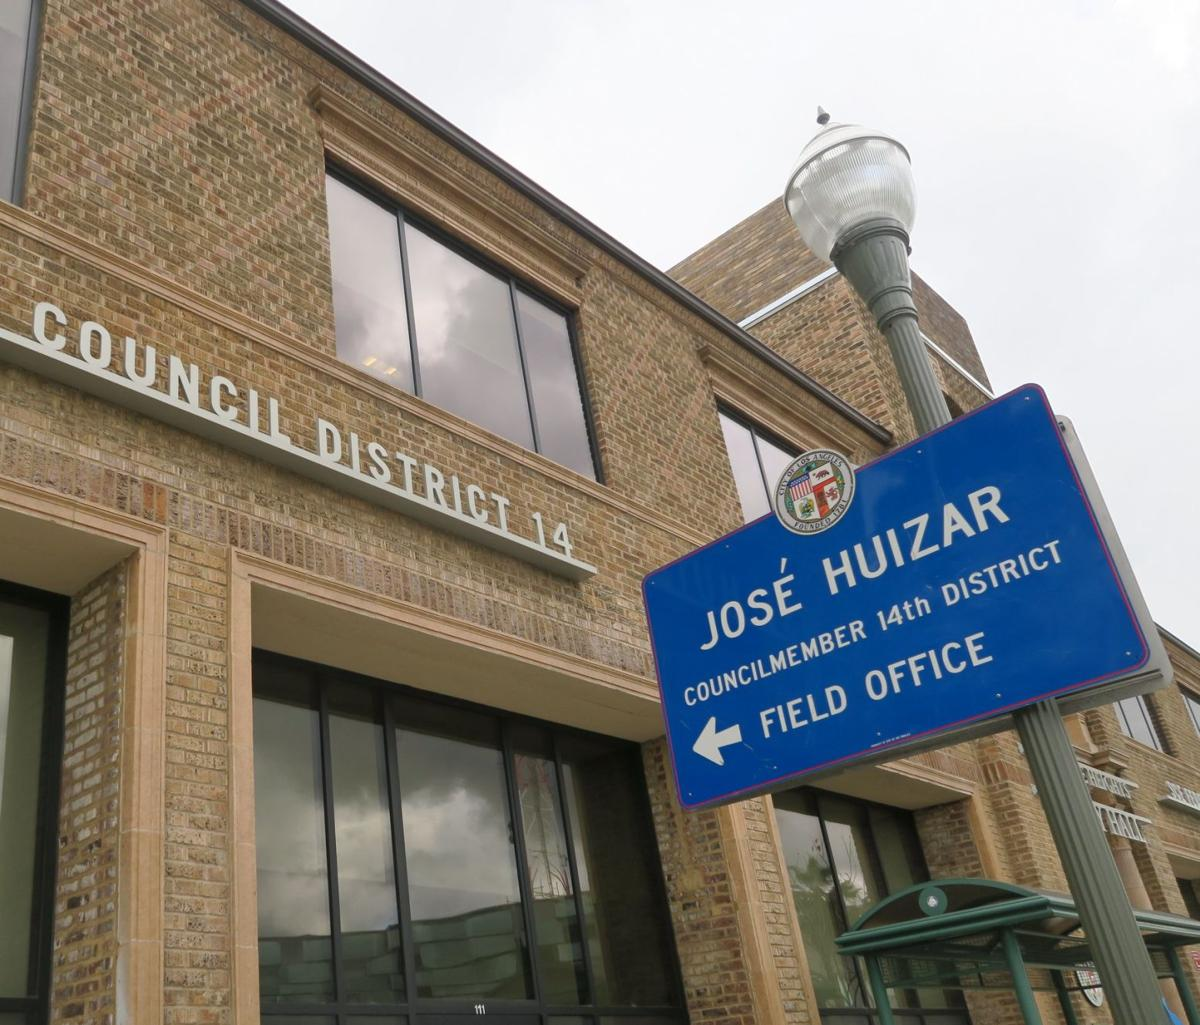 Jose Huizar field office